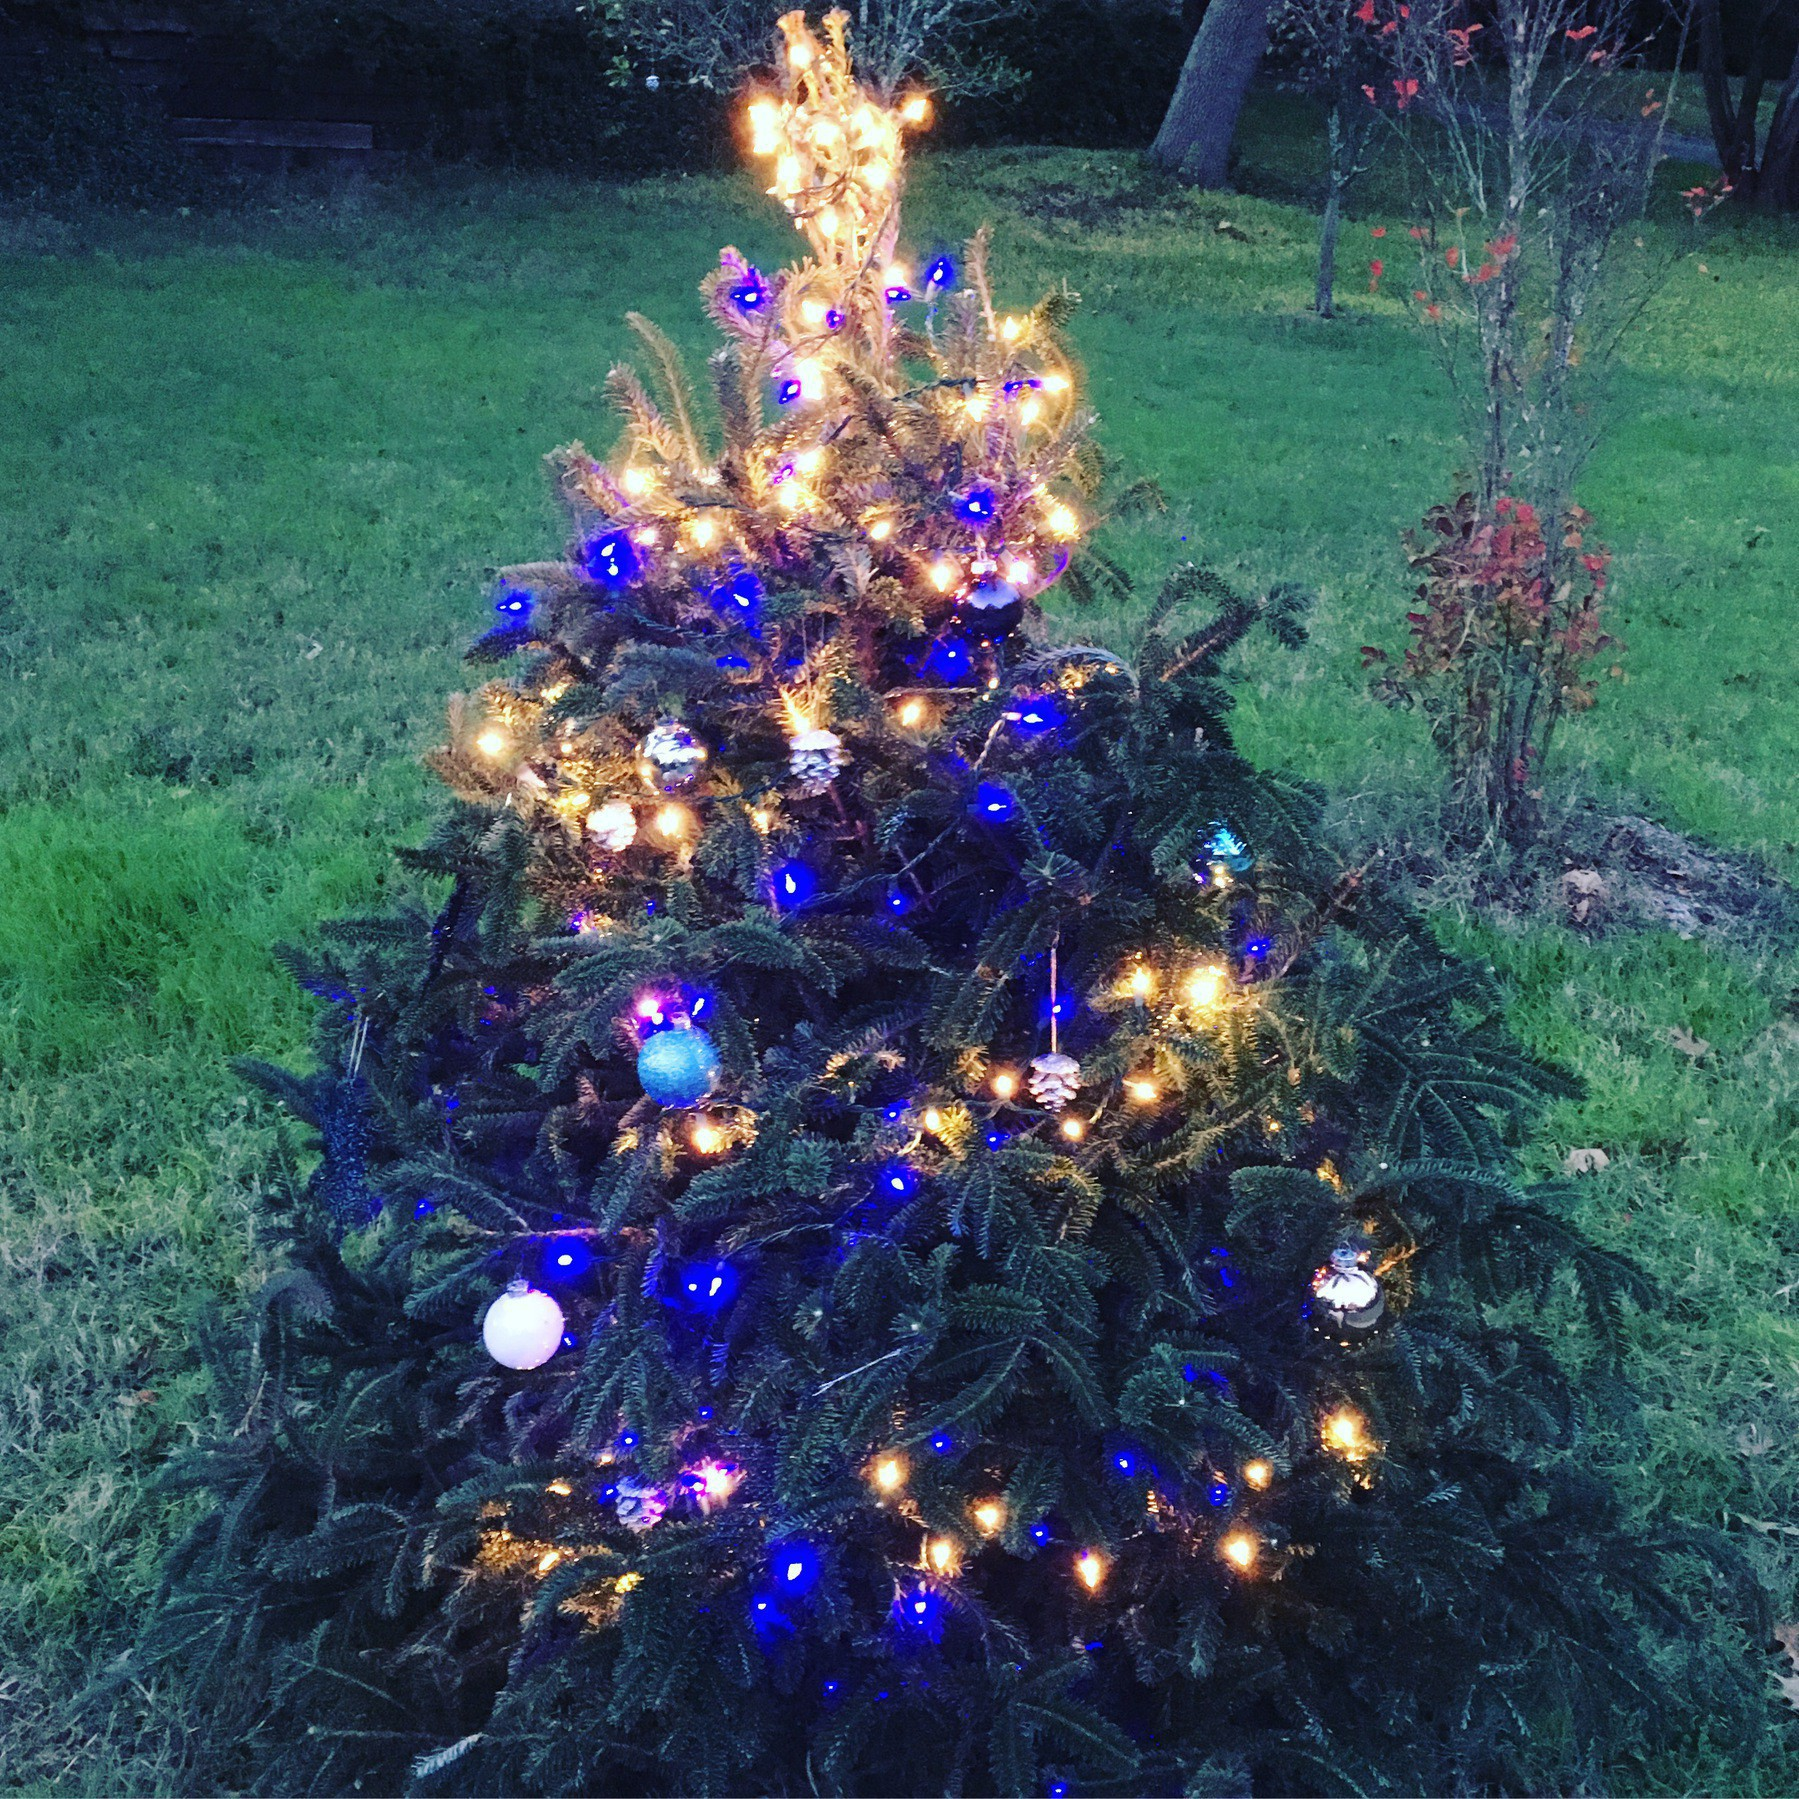 Blue lights for the outside tree